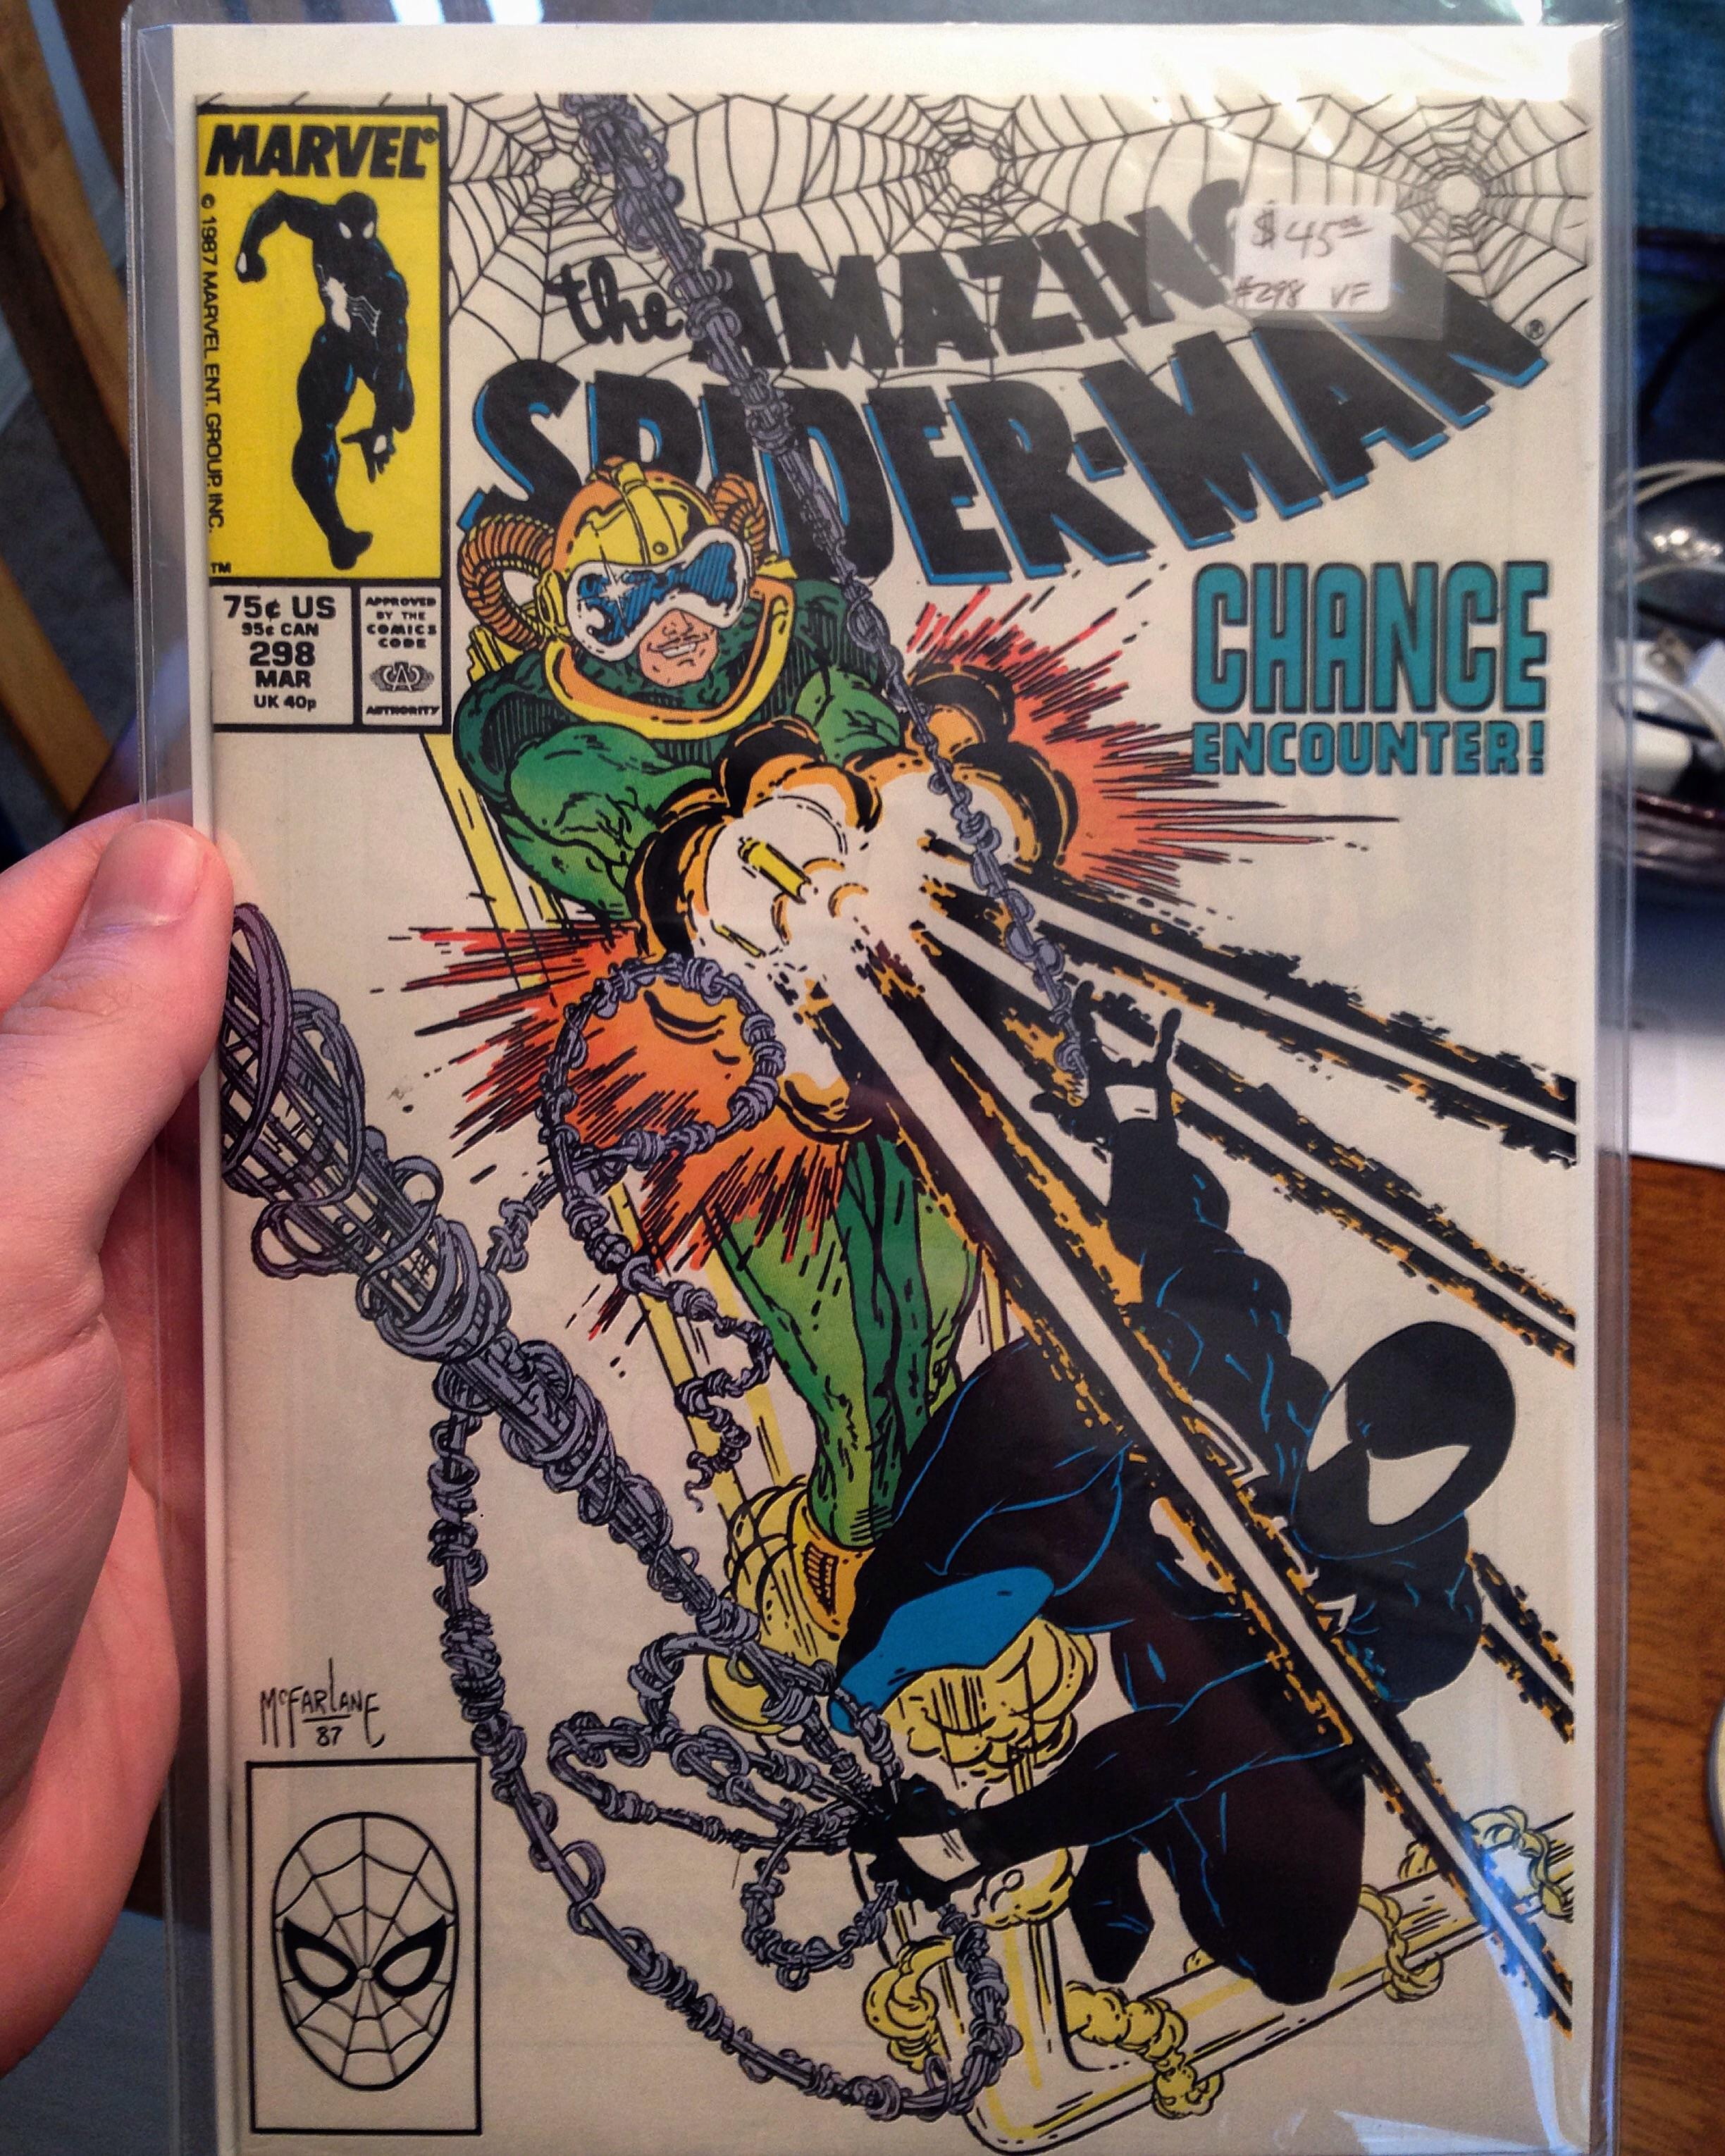 Spiderman 298 : spiderman, Amazing, Spider-Man, #298,, Start, McFarlane's, First, Cameo, Appearance, Venom, Marvel